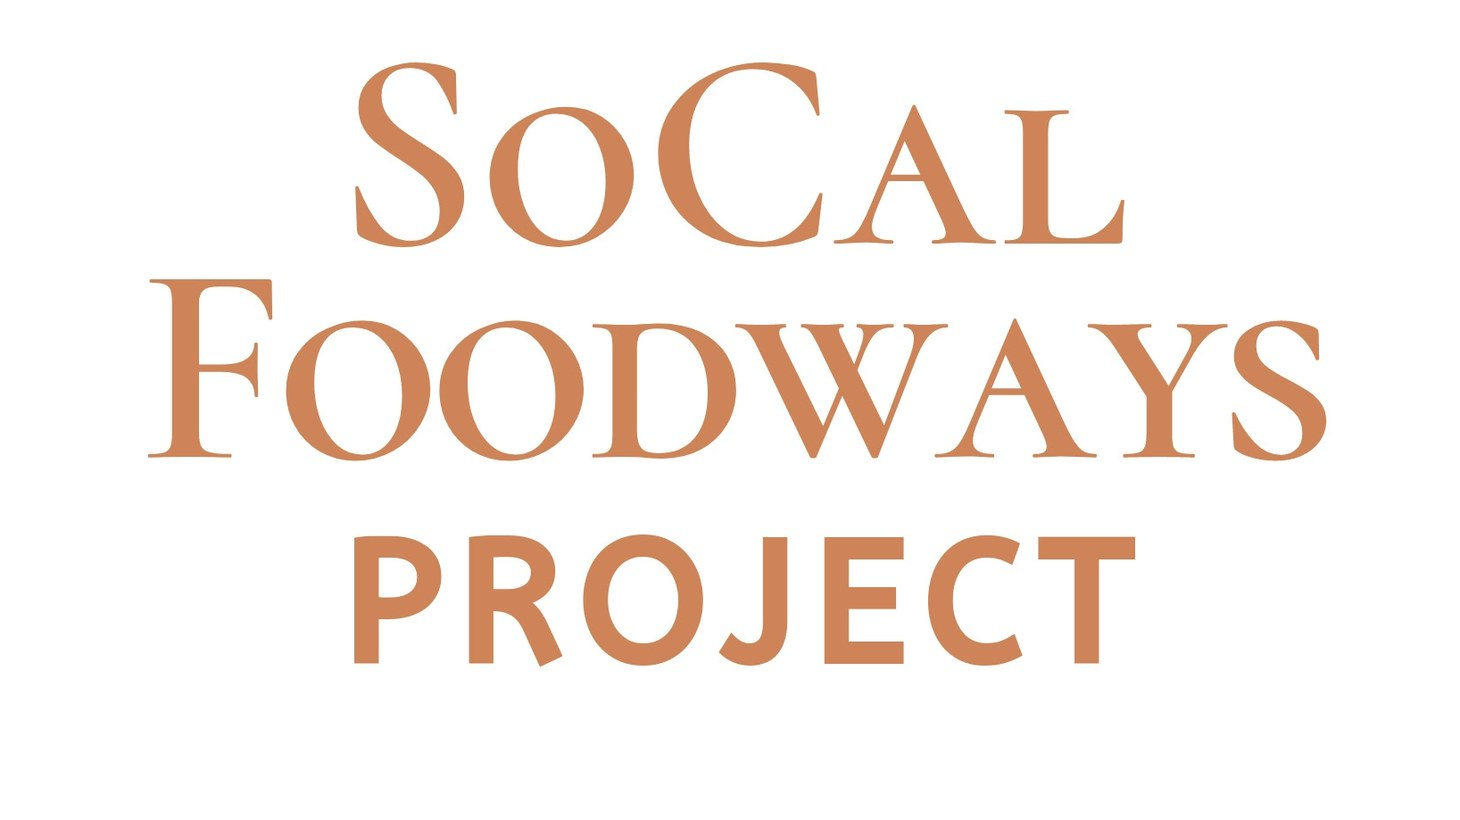 The Southern California Foodways Project will host its first symposium on October 11-12, 2019.